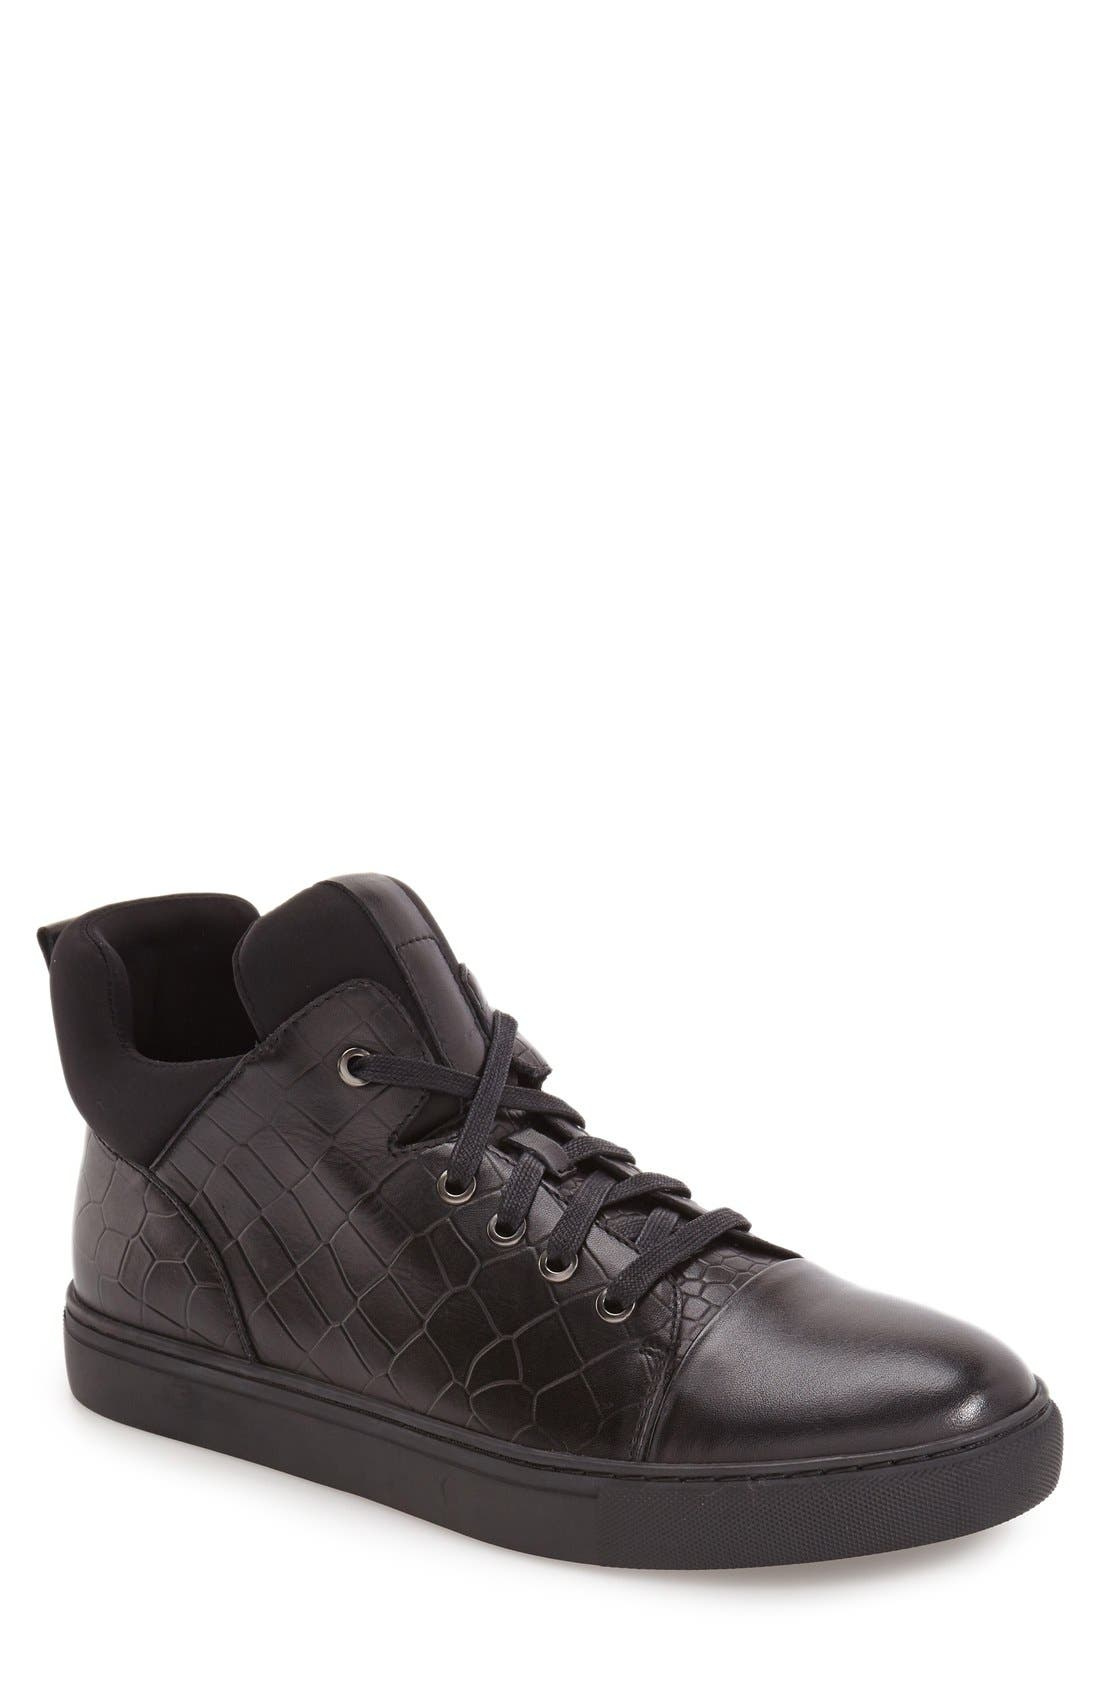 'Remix' High Top Sneaker,                         Main,                         color, 001